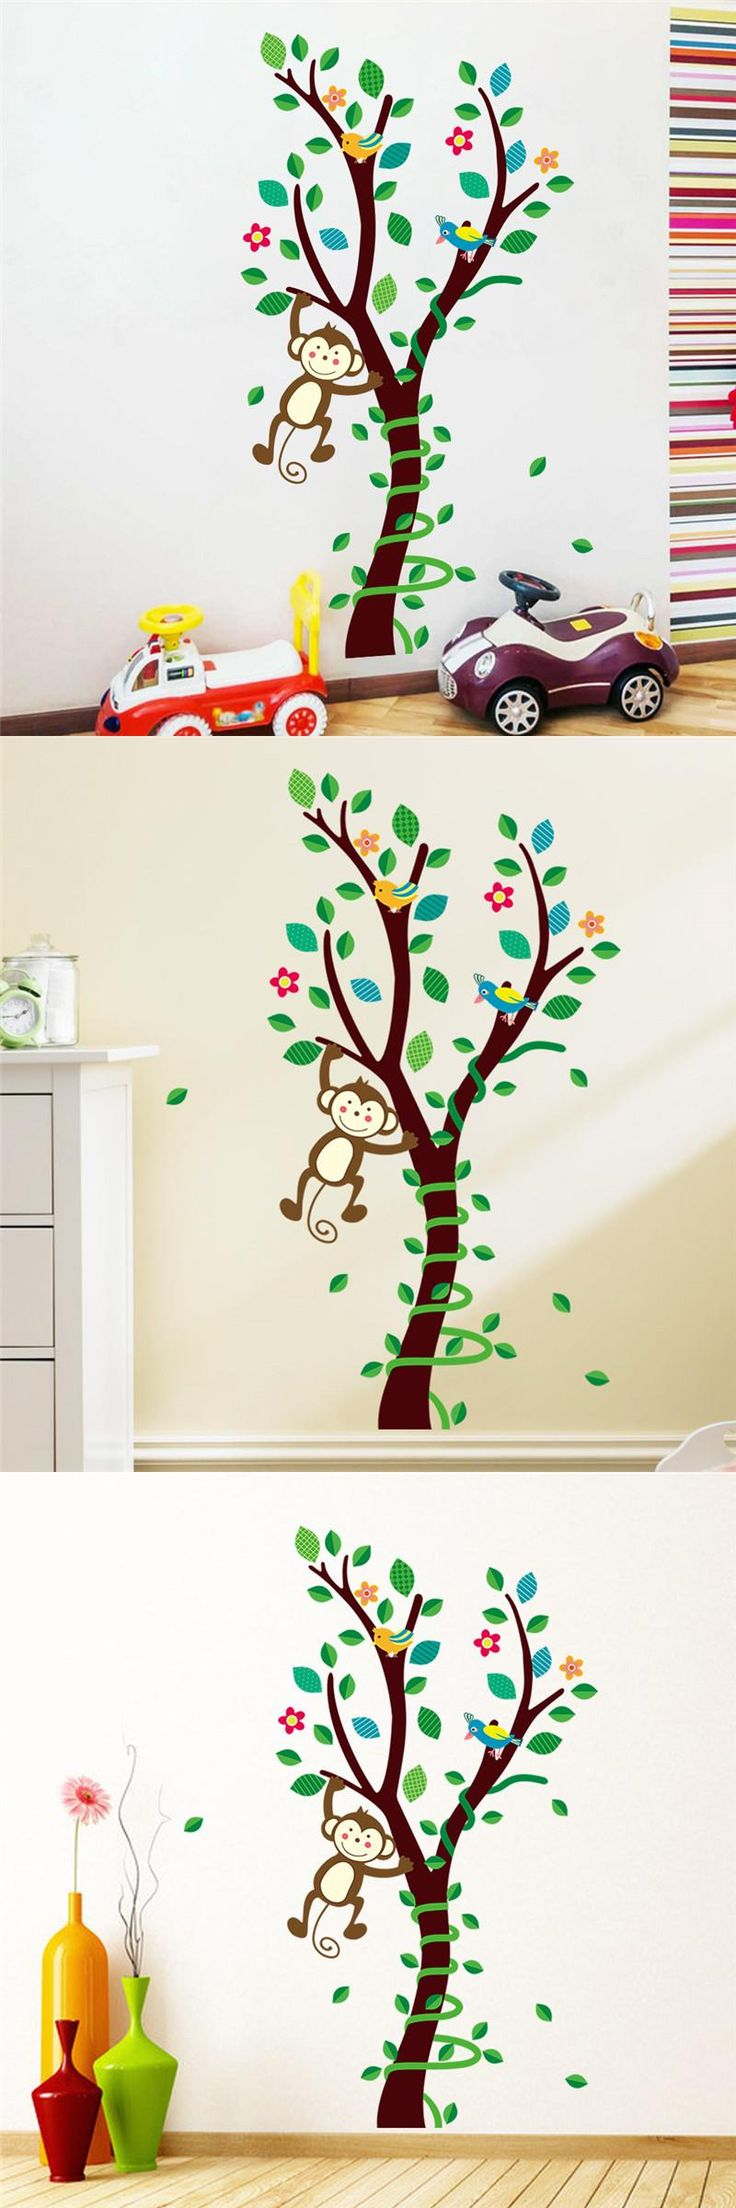 11 best muurstickers kinderkamer images on pinterest bird wall visit to buy cartoon animals monkey flower tree forest wall stickers diy home decor